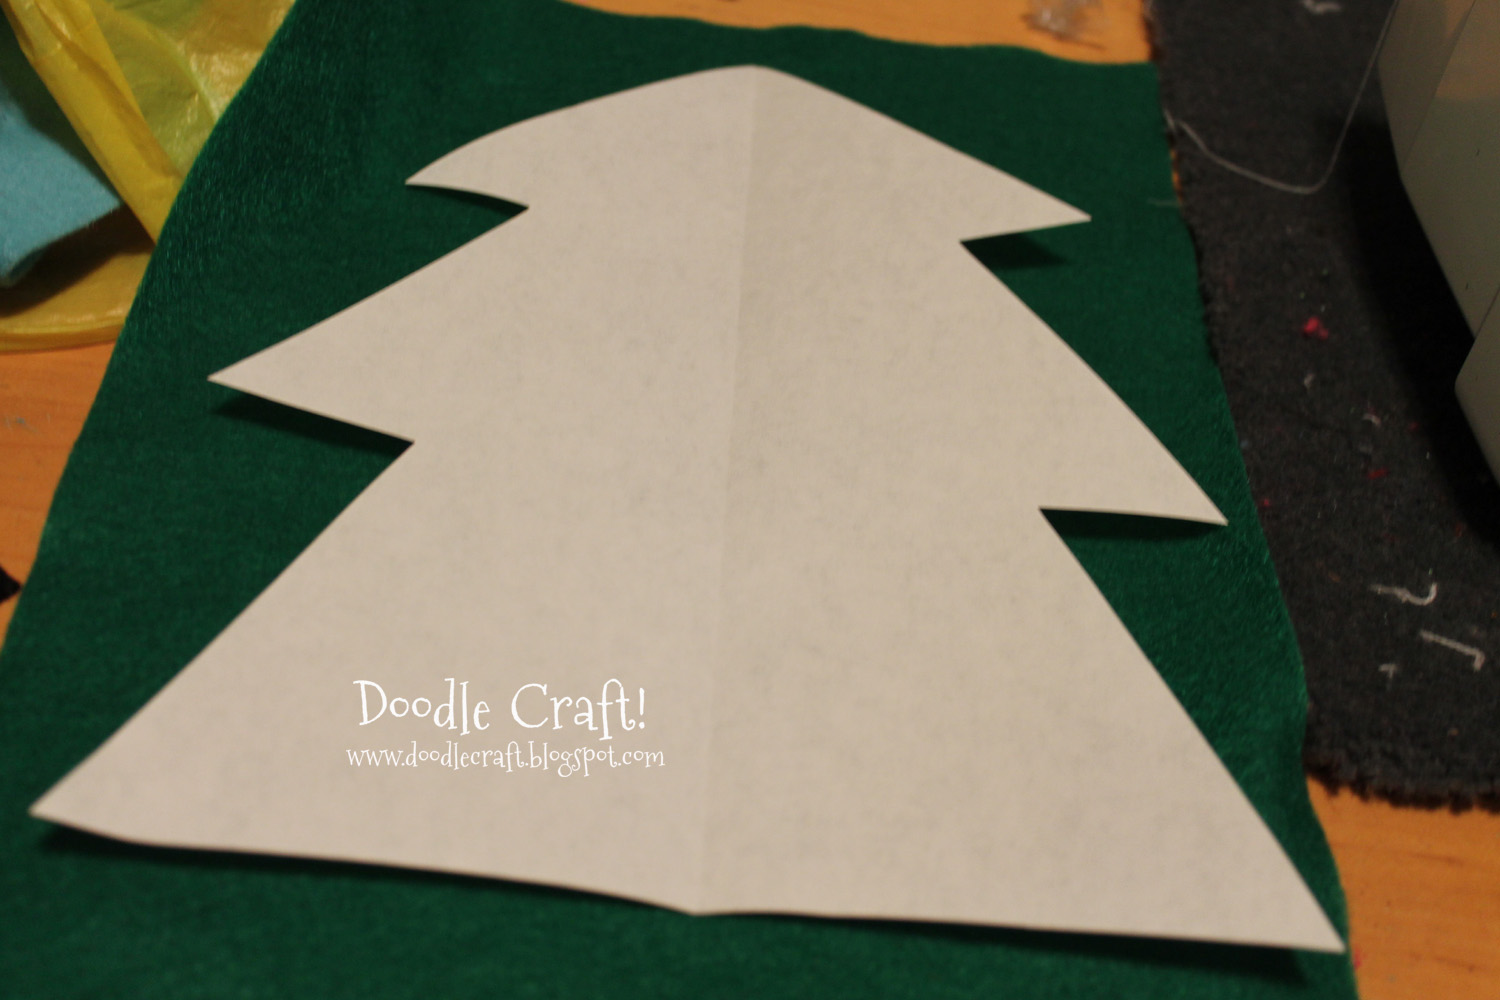 Green Christmas Tree Template I cut out a tree pattern and